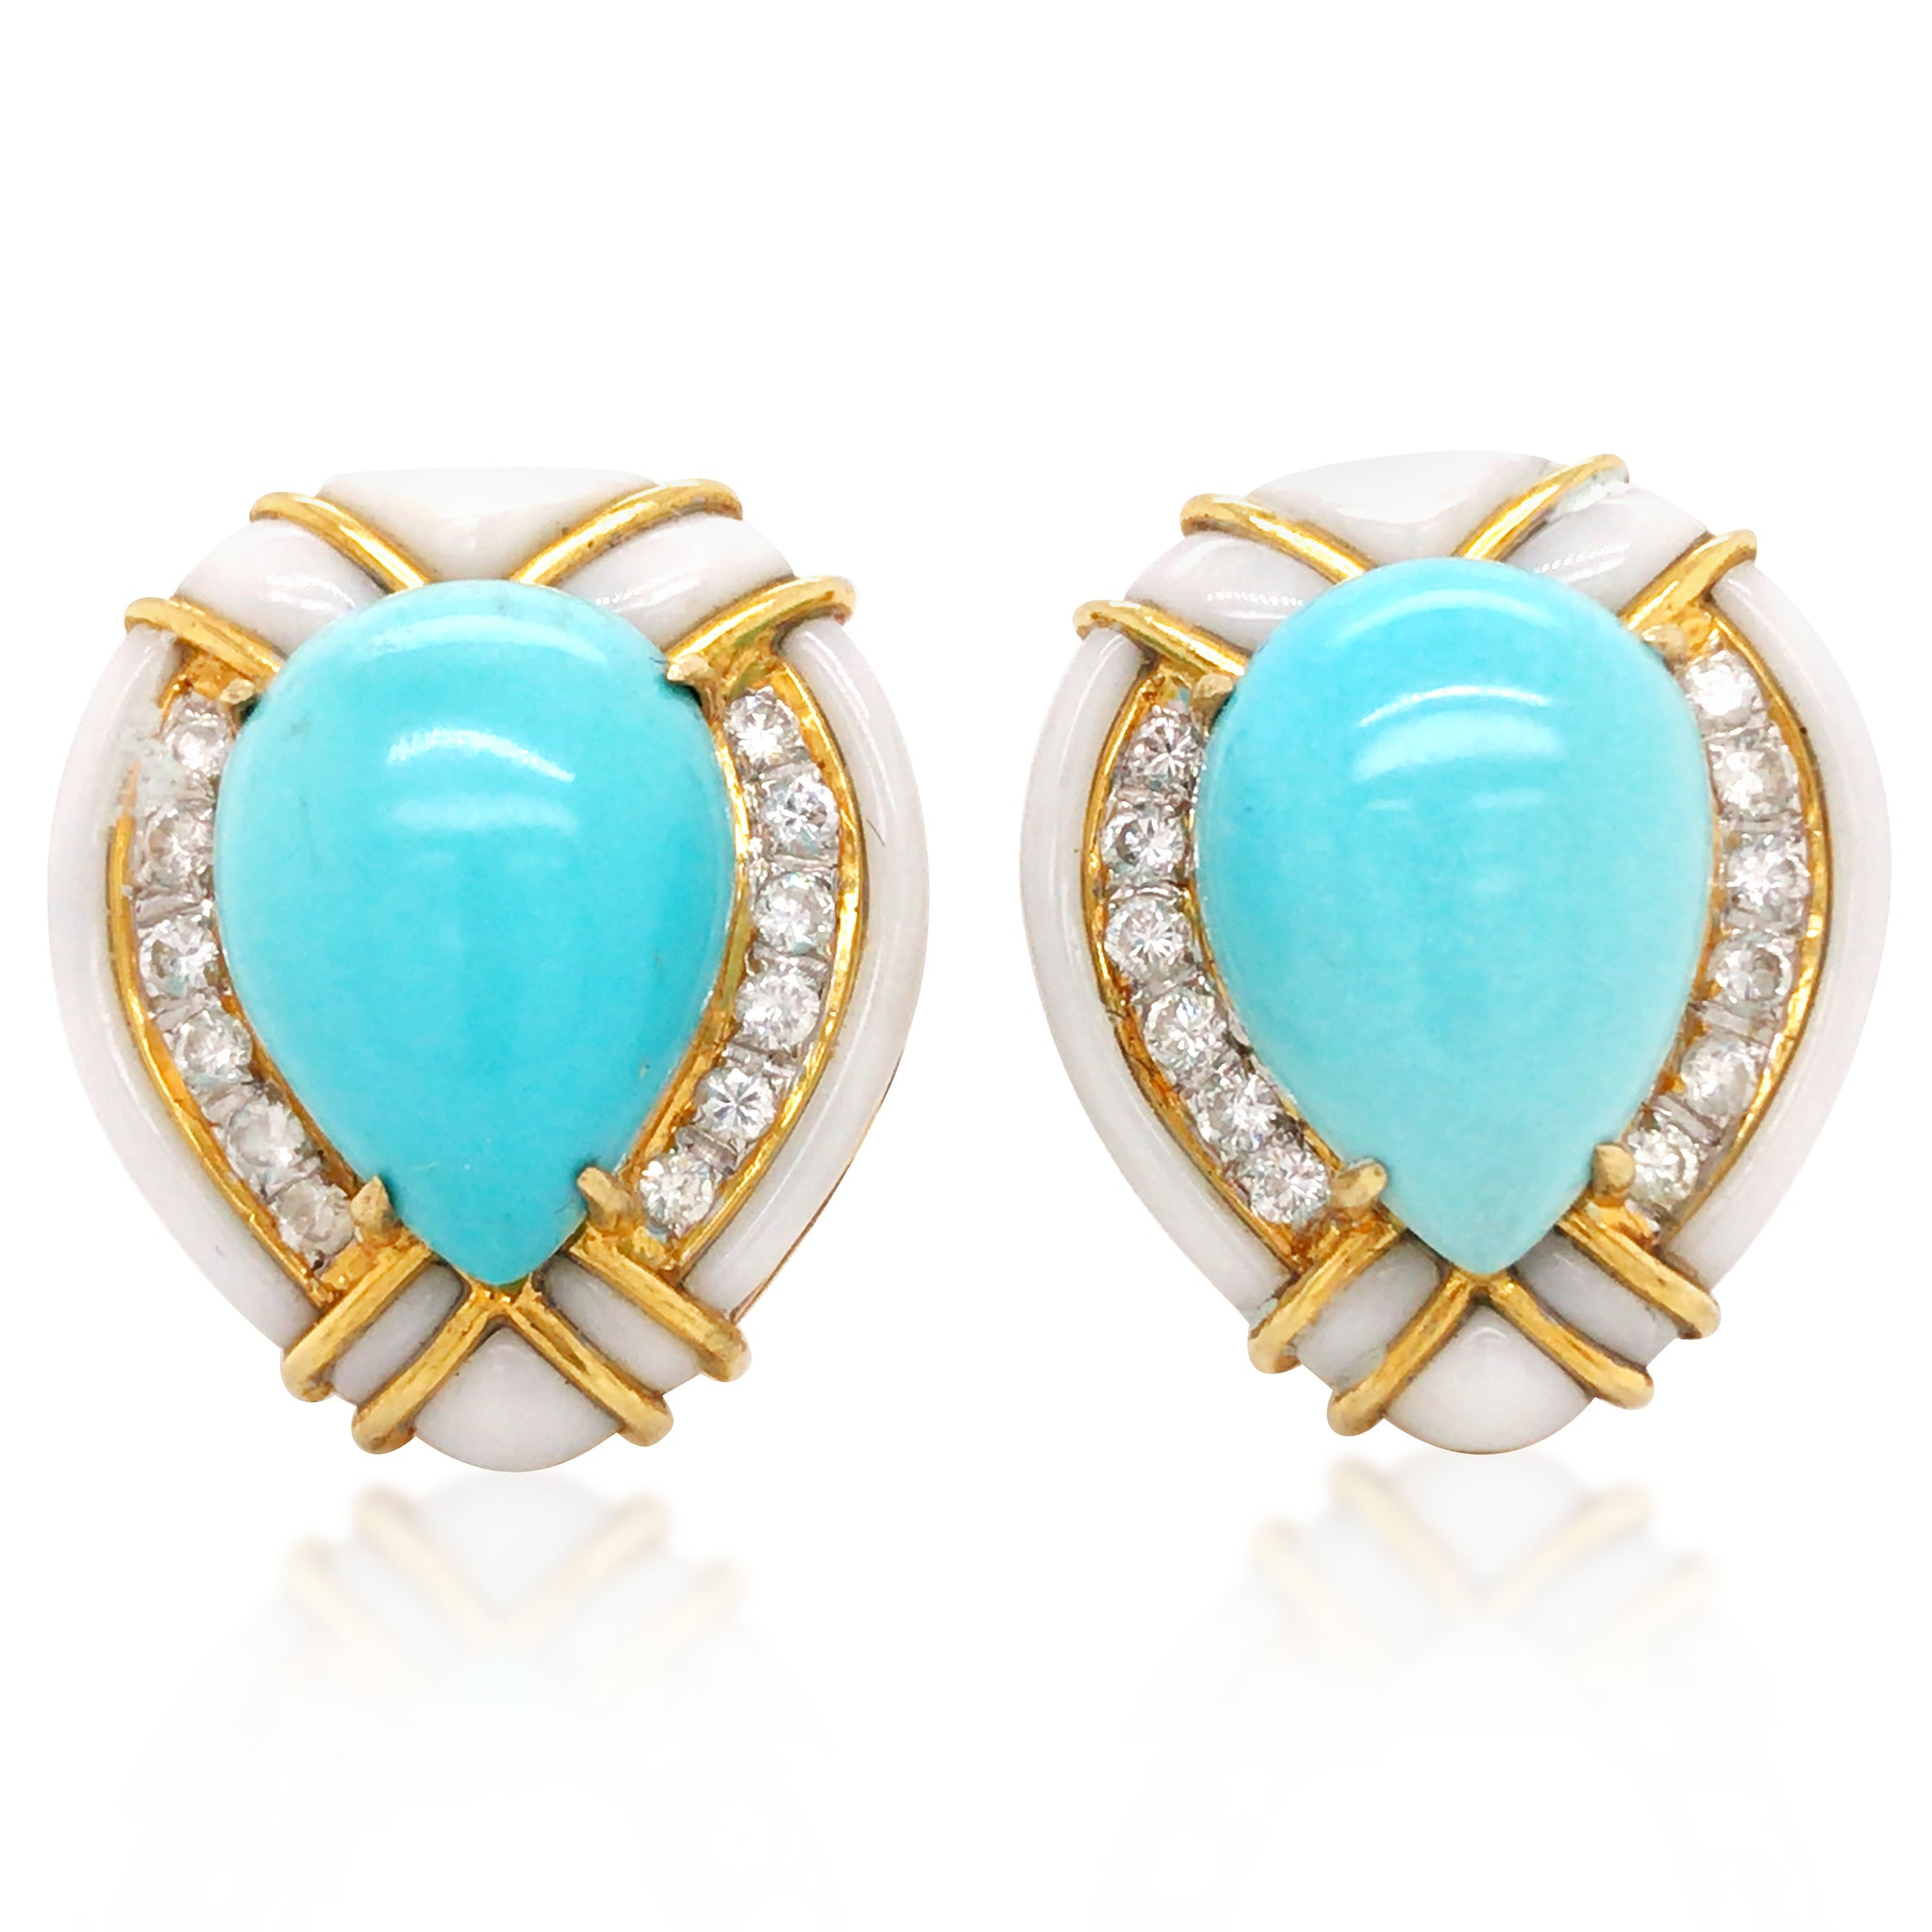 18K Gold Diamond Multigem Earrings - Lueur Jewelry